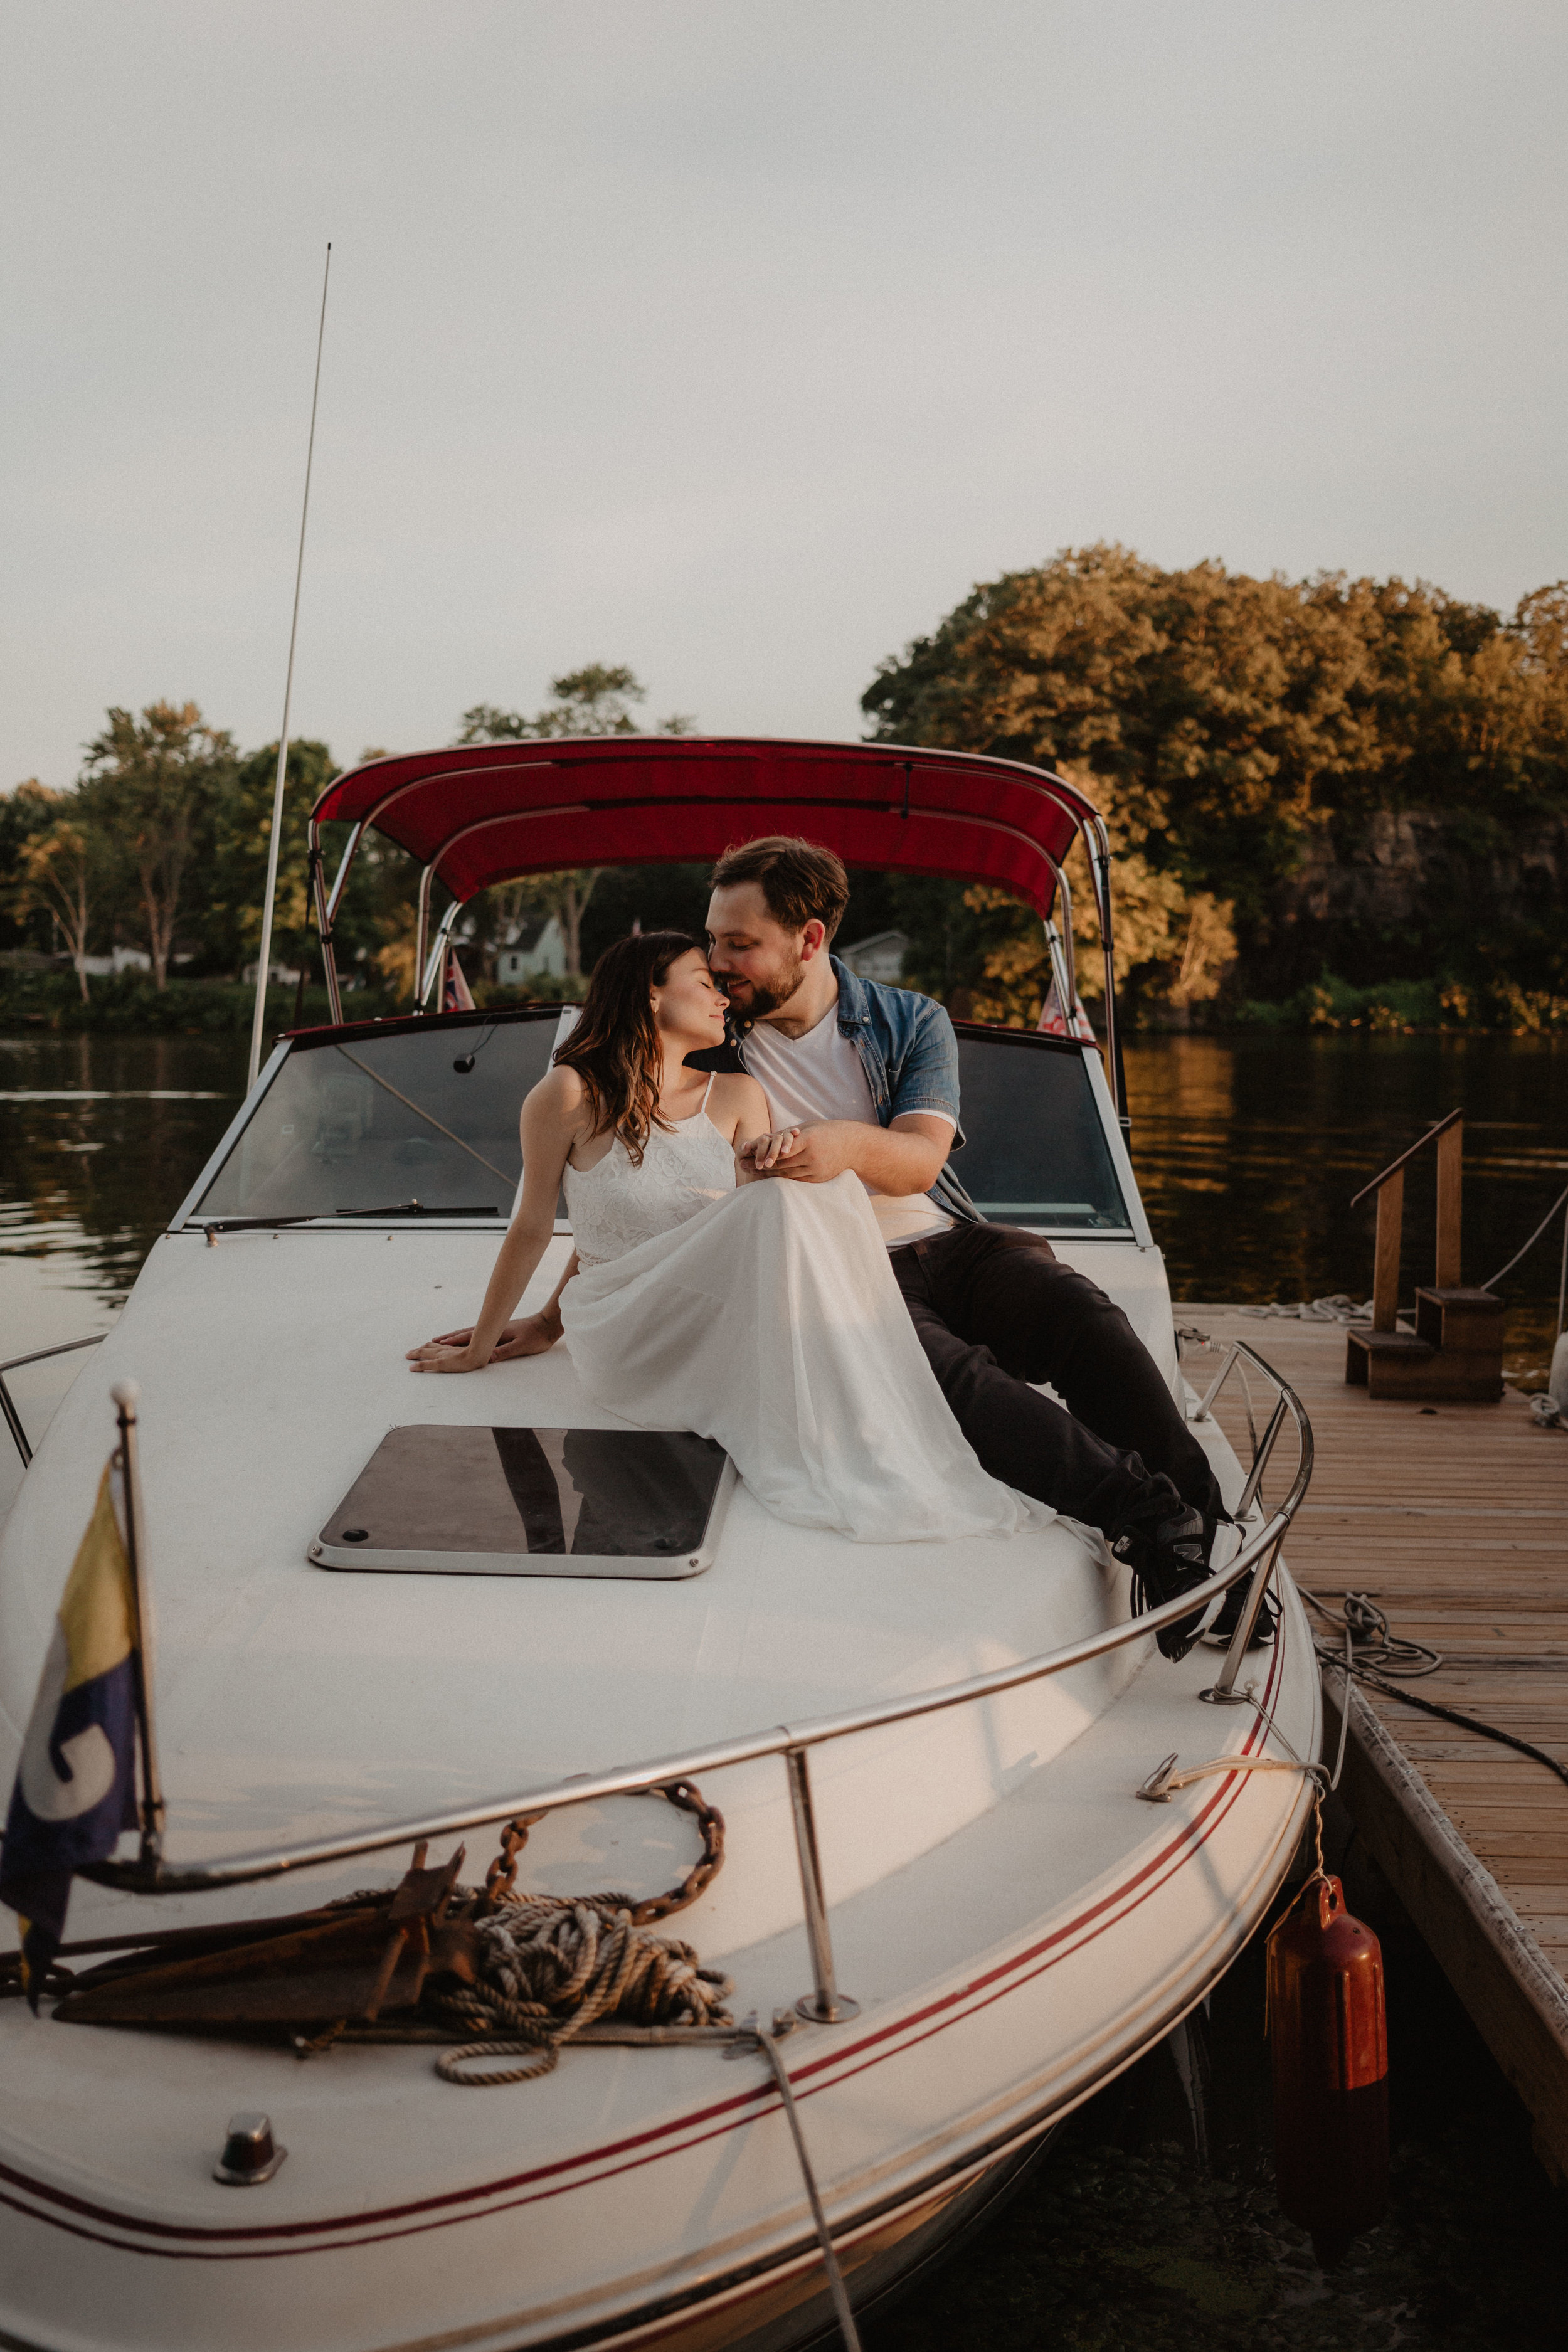 schenectady-yacht-club-engagement-23.jpg